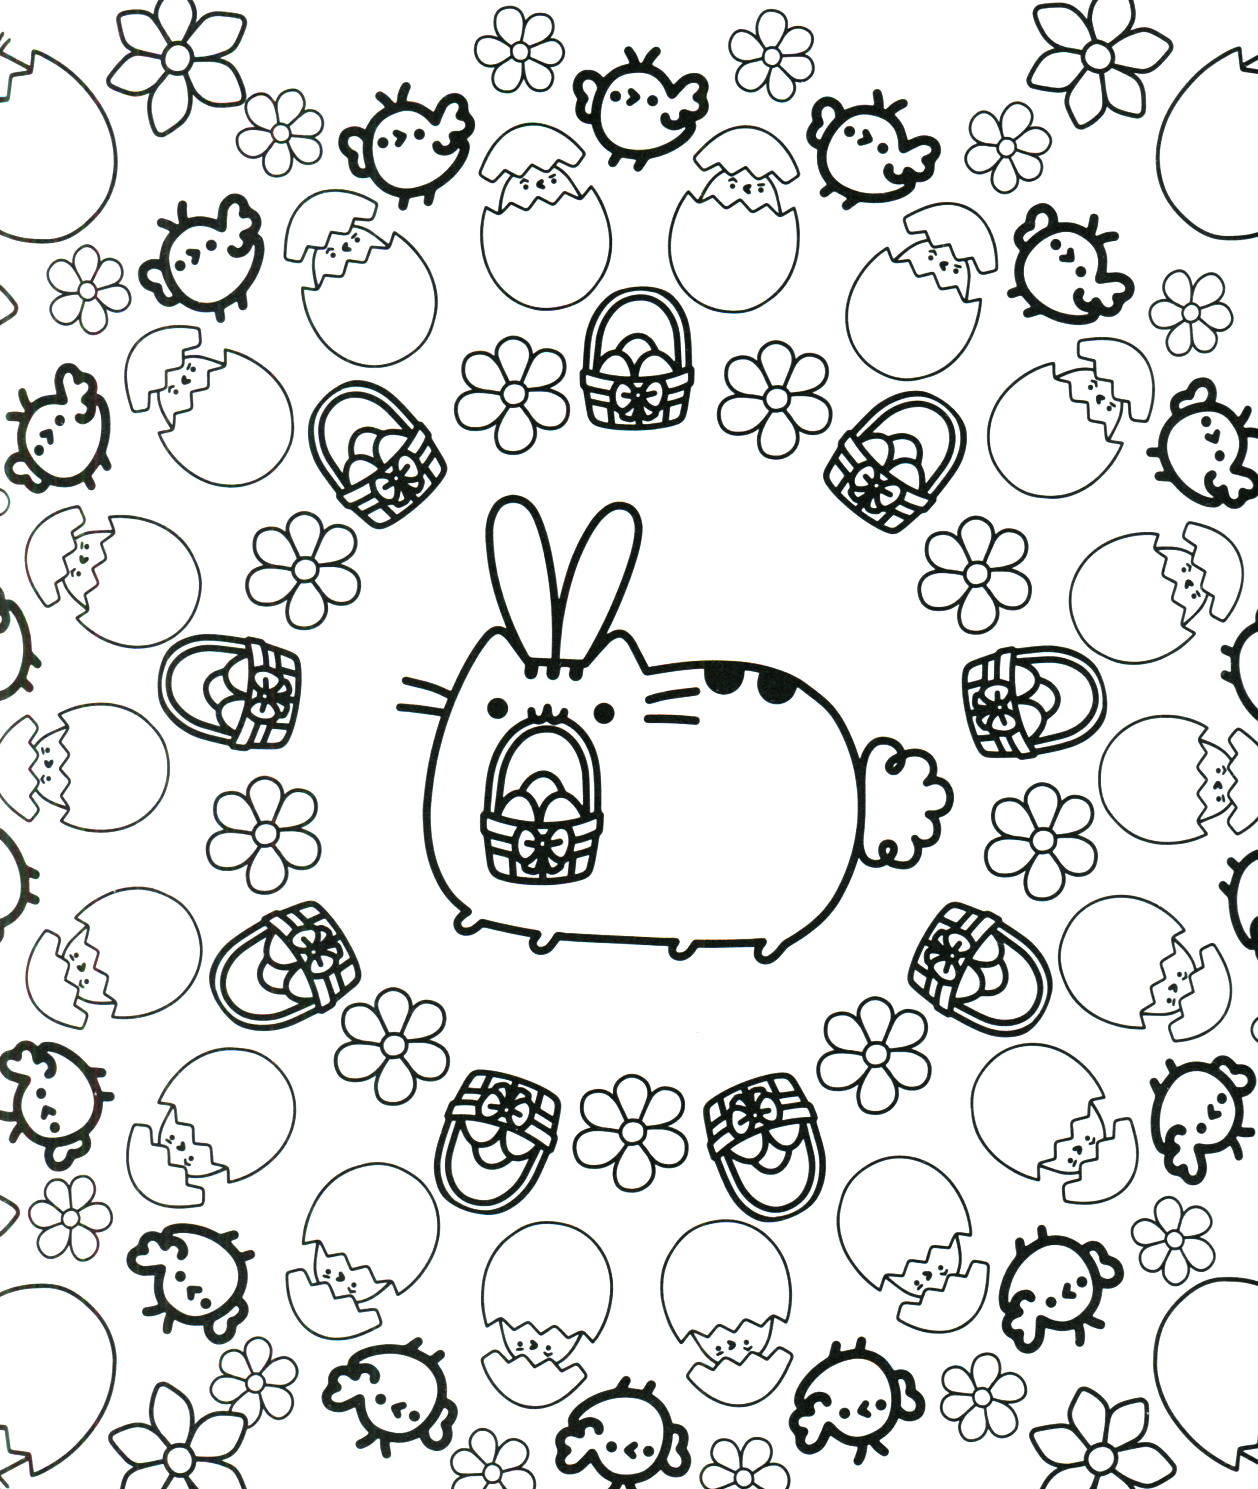 Pusheen Coloring Book Pusheen Pusheen The Cat Pusheen Coloring Pages Easter Coloring Pages Printable Coloring Pages